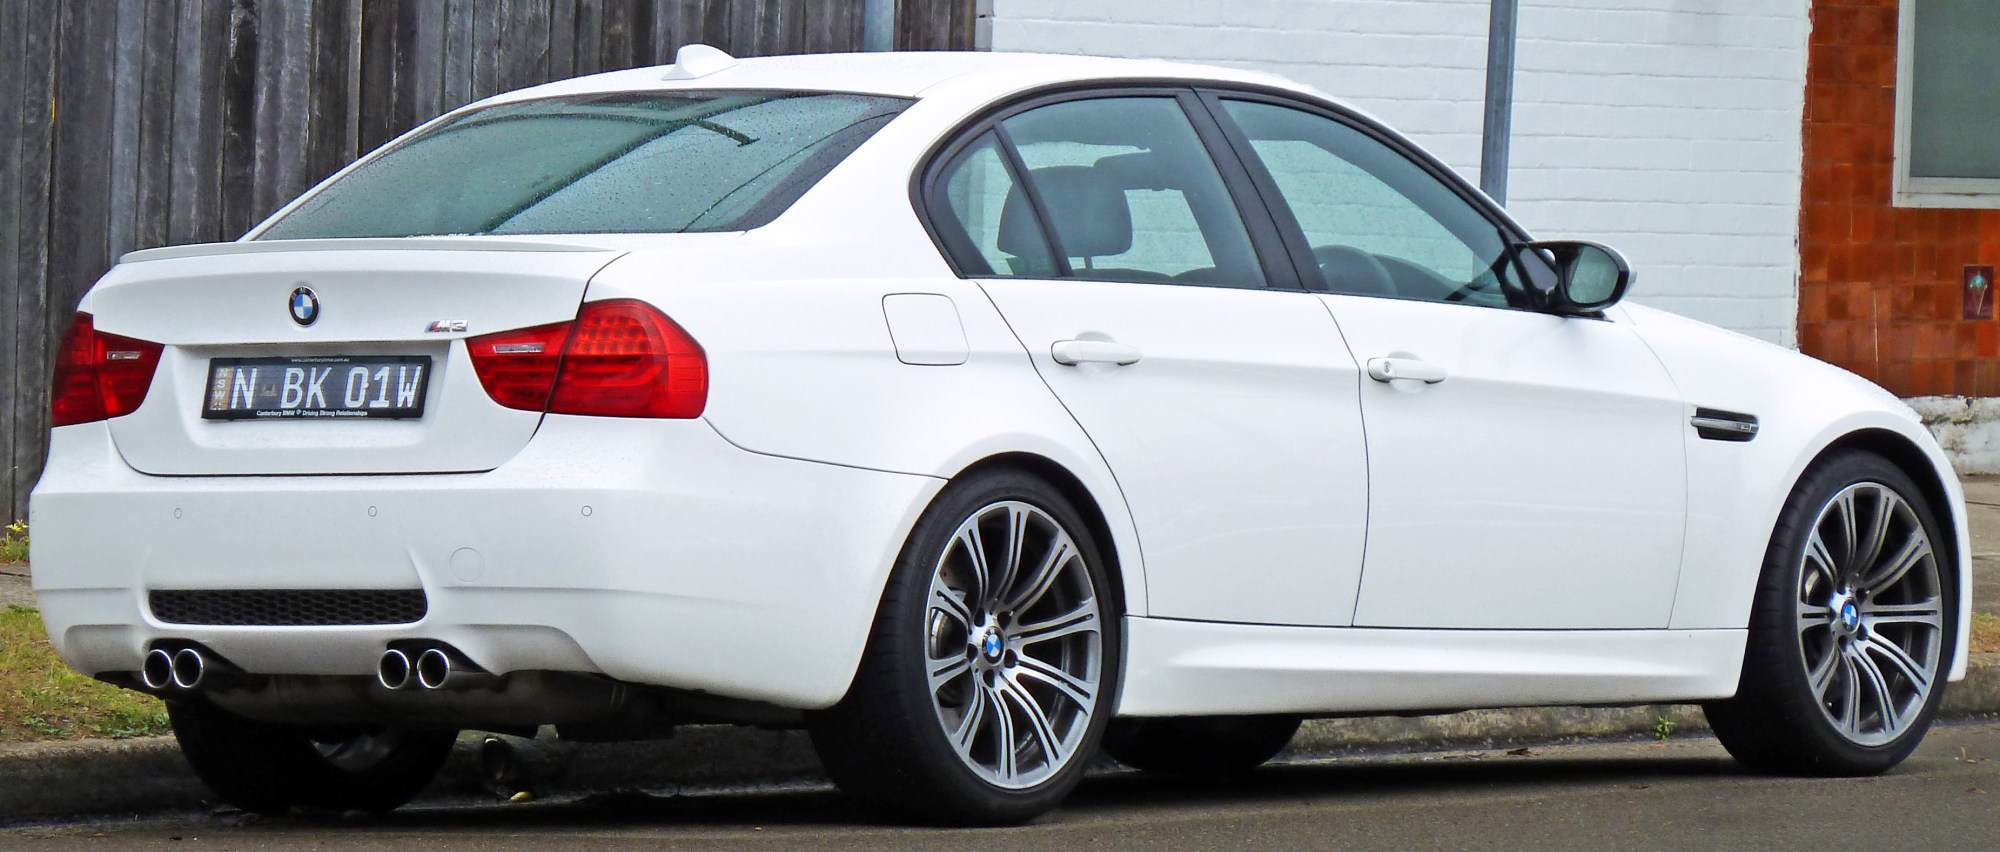 hight resolution of file 2008 2010 bmw m3 e90 sedan 05 jpg